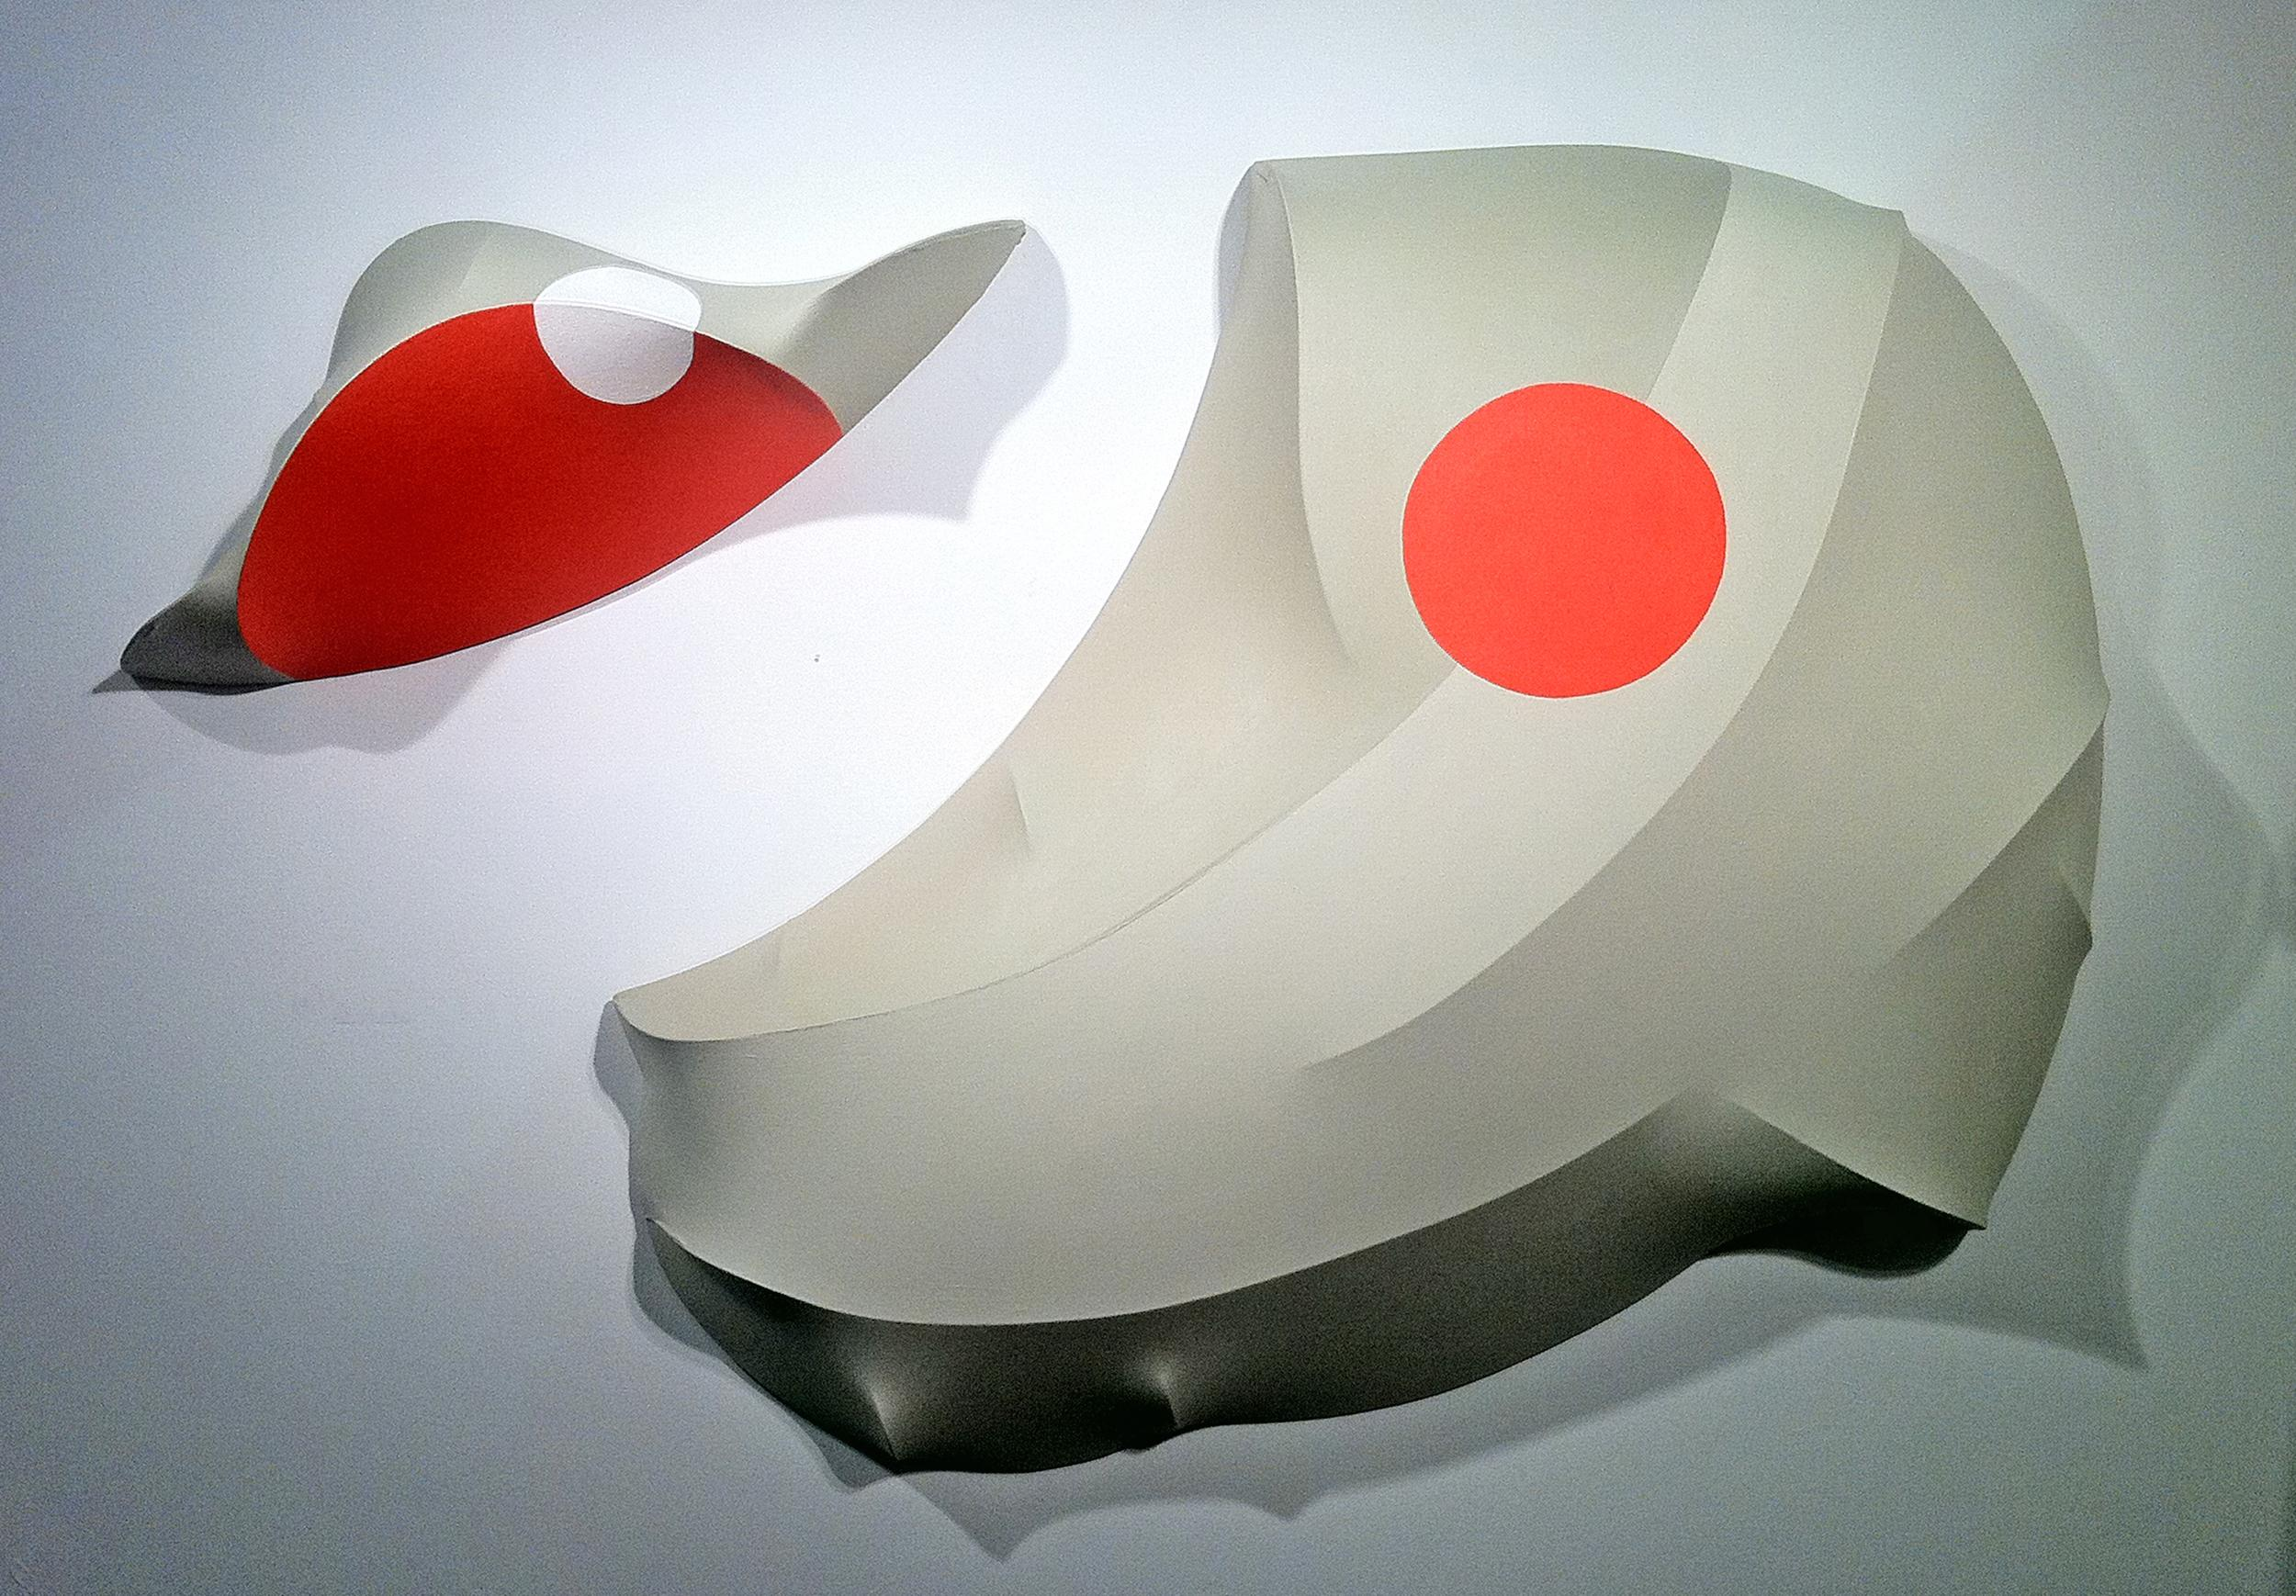 Number 26, Vertebrate Companion Series, 2012, acrylic on canvas, wall sculpture